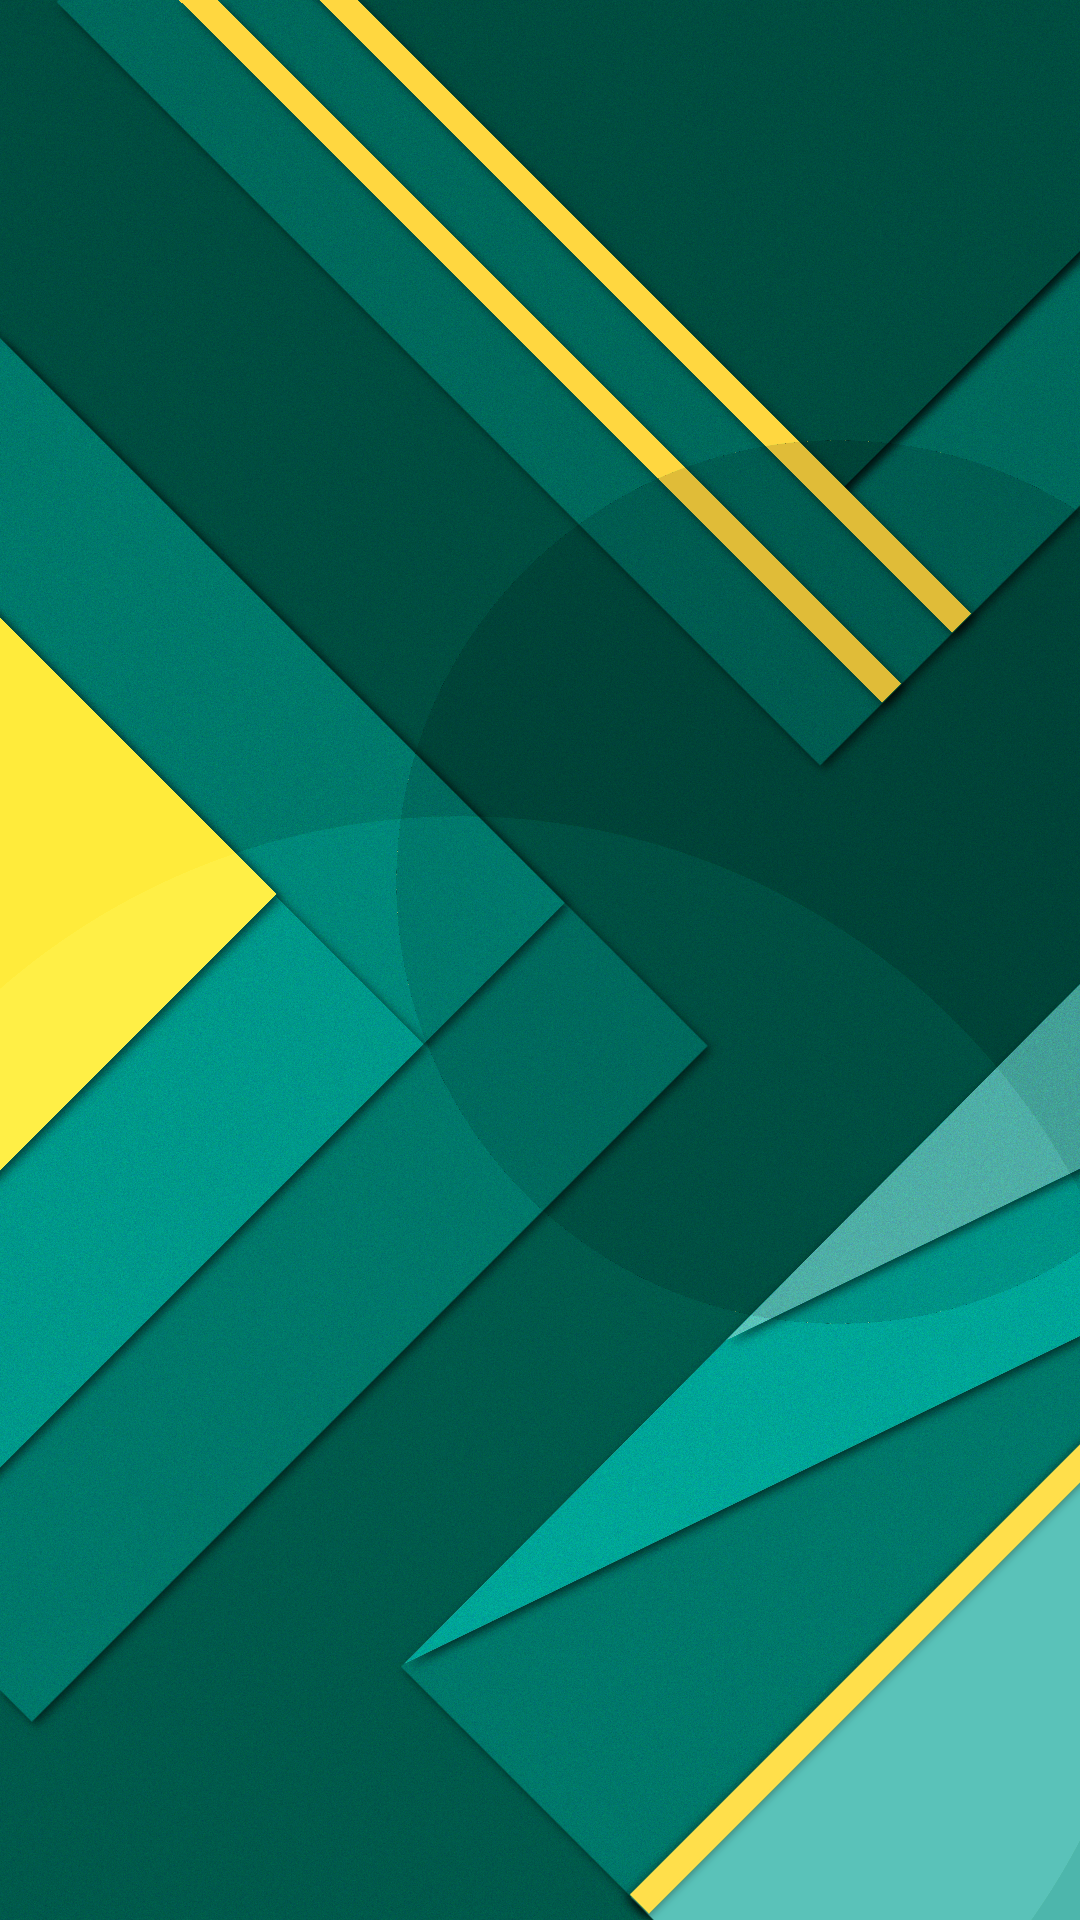 Creating A Material Design Wallpaper For Your Smartphone